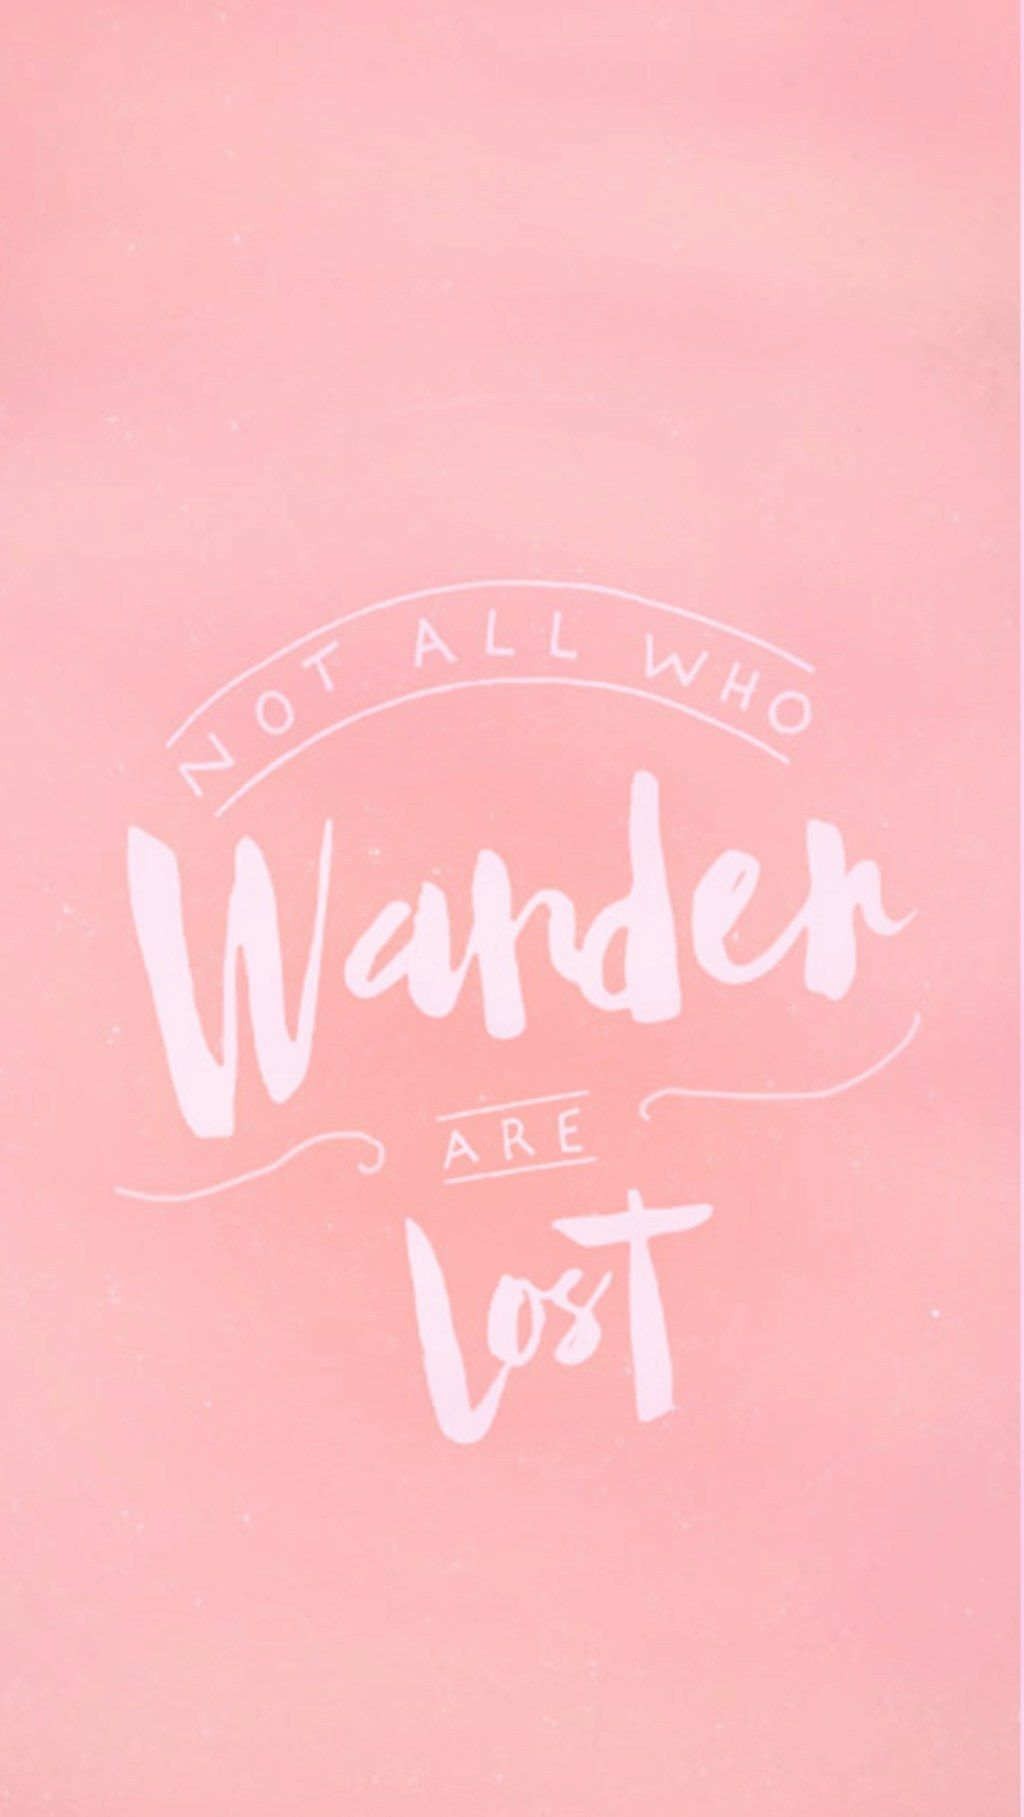 12 Free Phone Wallpapers To Inspire Your Summer Cute Wallpapers Quotes Iphone Wallpaper Quotes Inspirational Free Phone Wallpaper